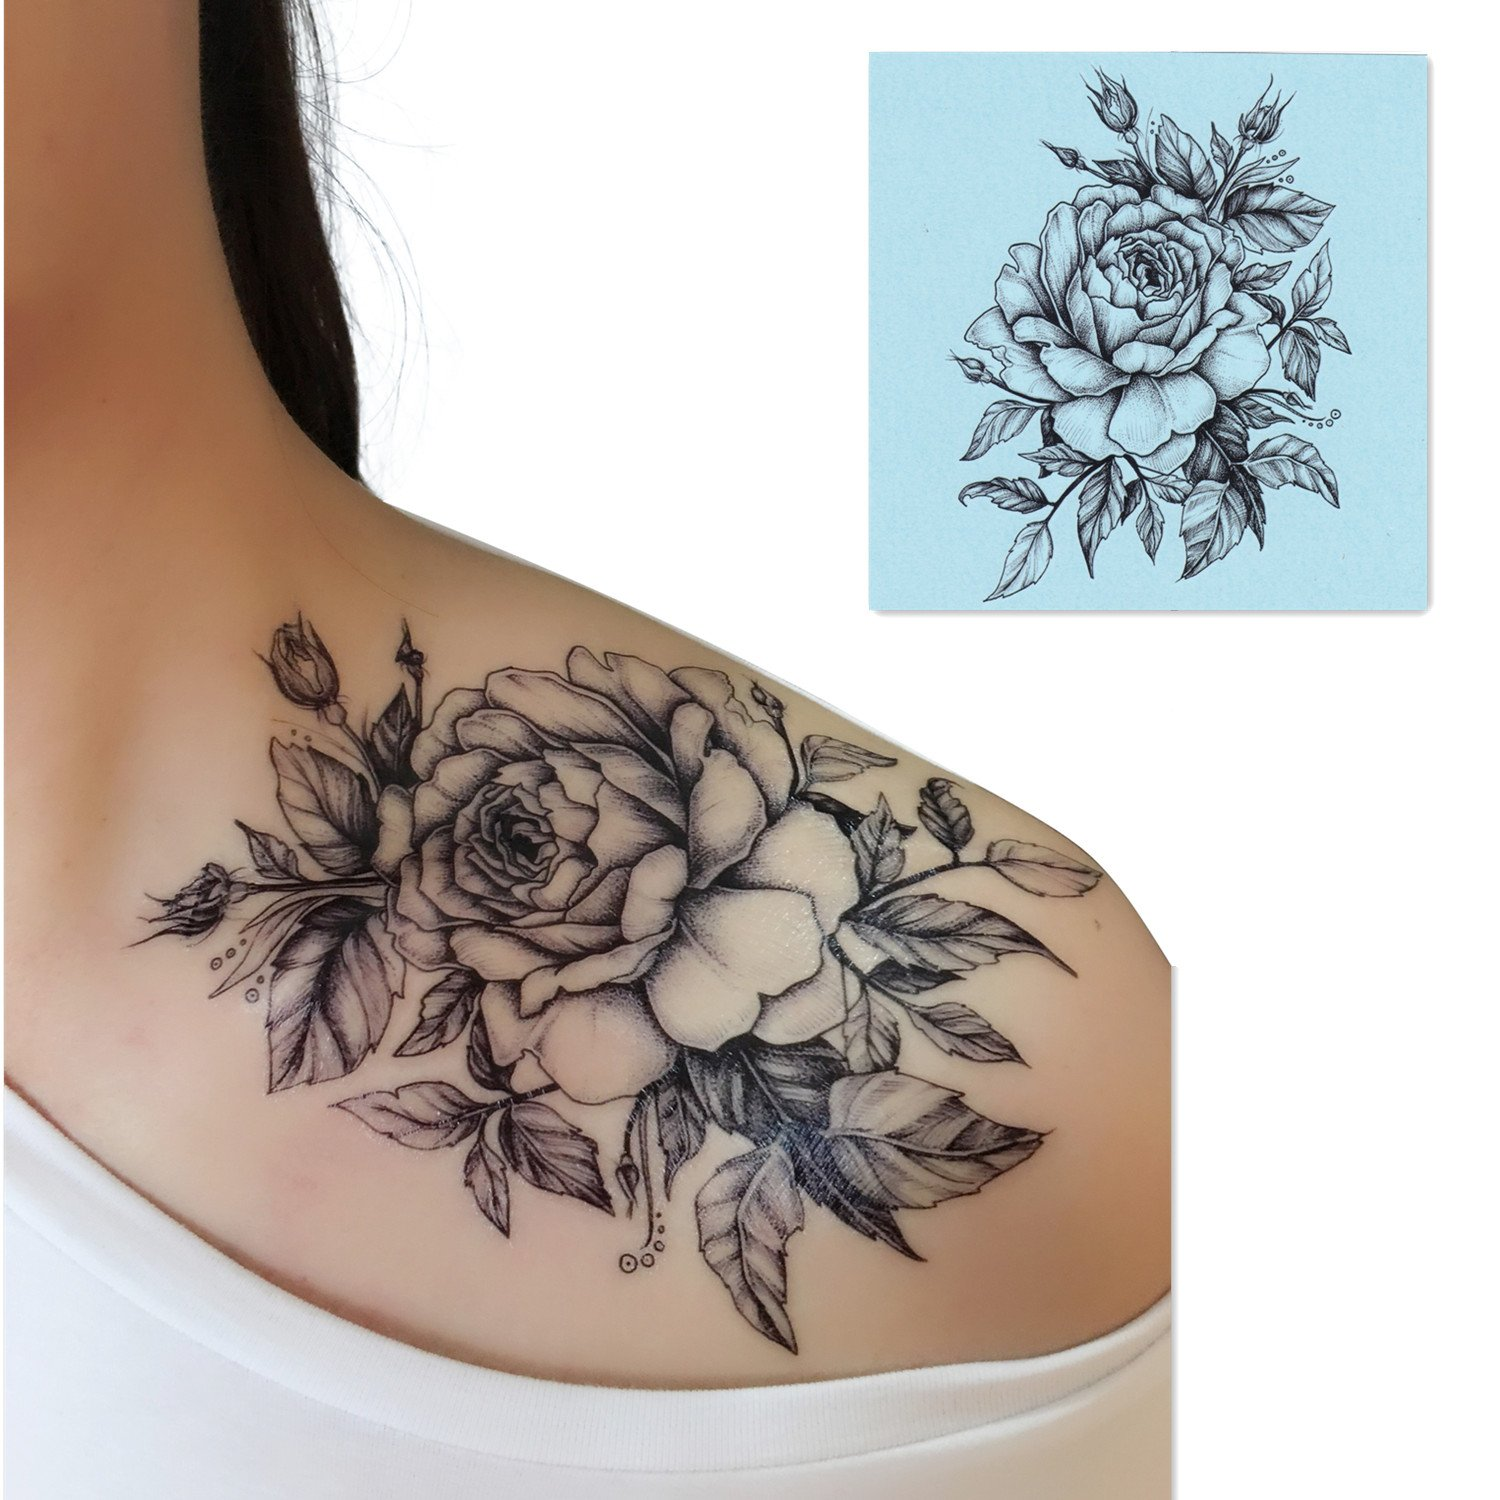 Amazon tattify traditional flower temporary tattoo twin rose dalin 4 sheets sexy temporary tattoos for men women flowers collection black rose izmirmasajfo